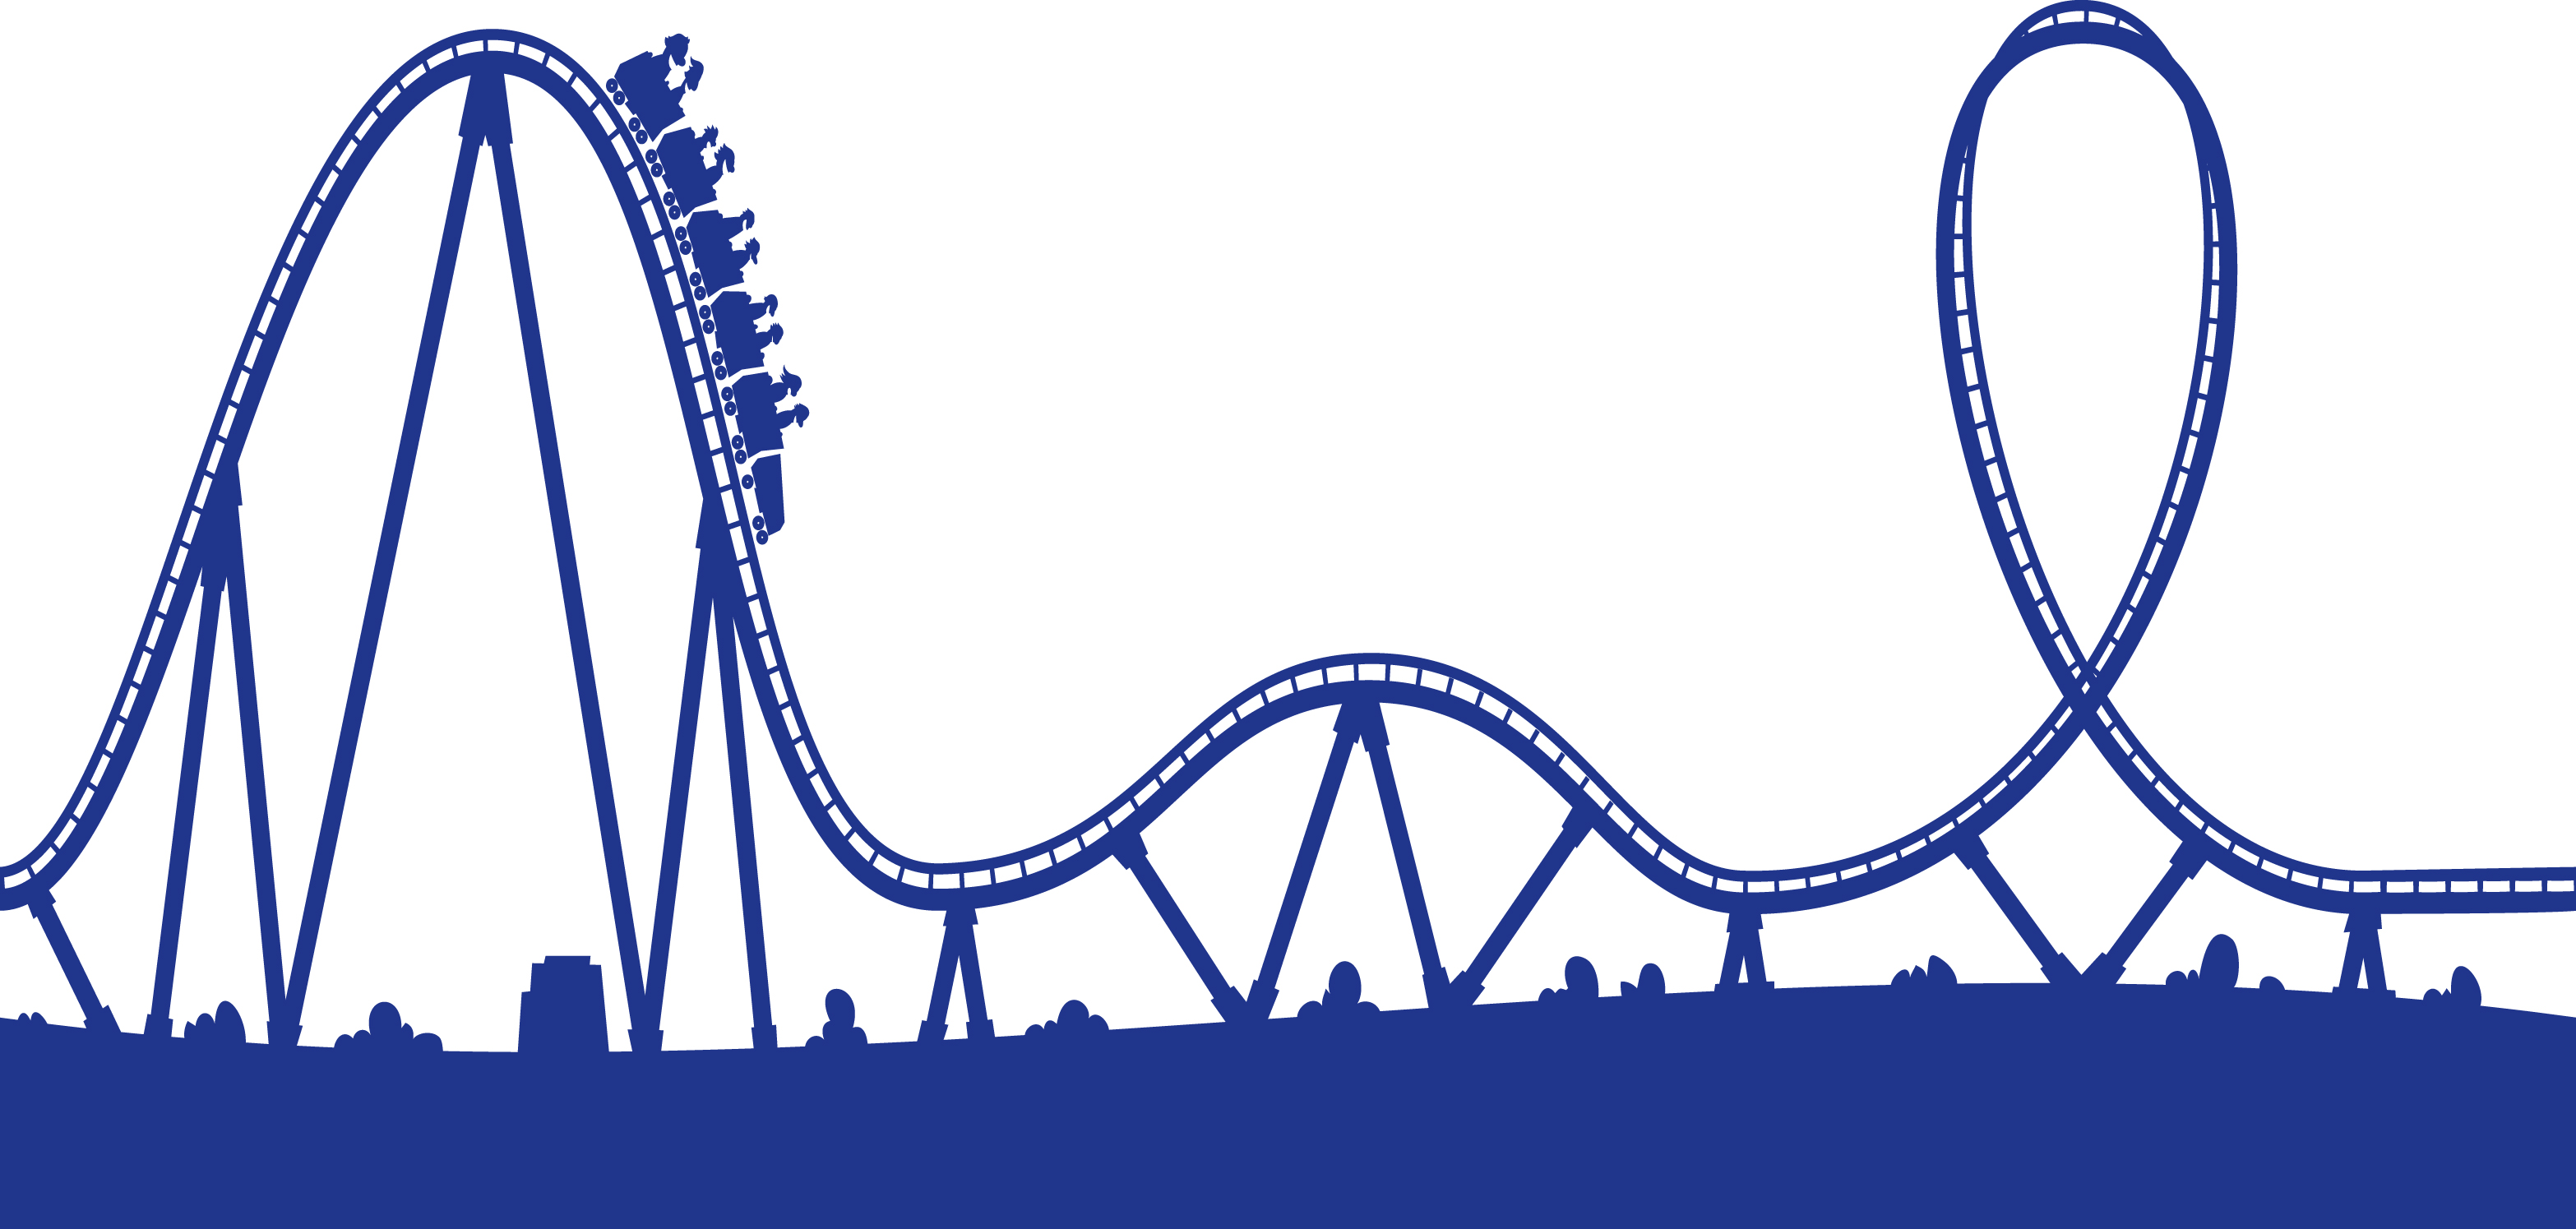 Roller coaster track clipart